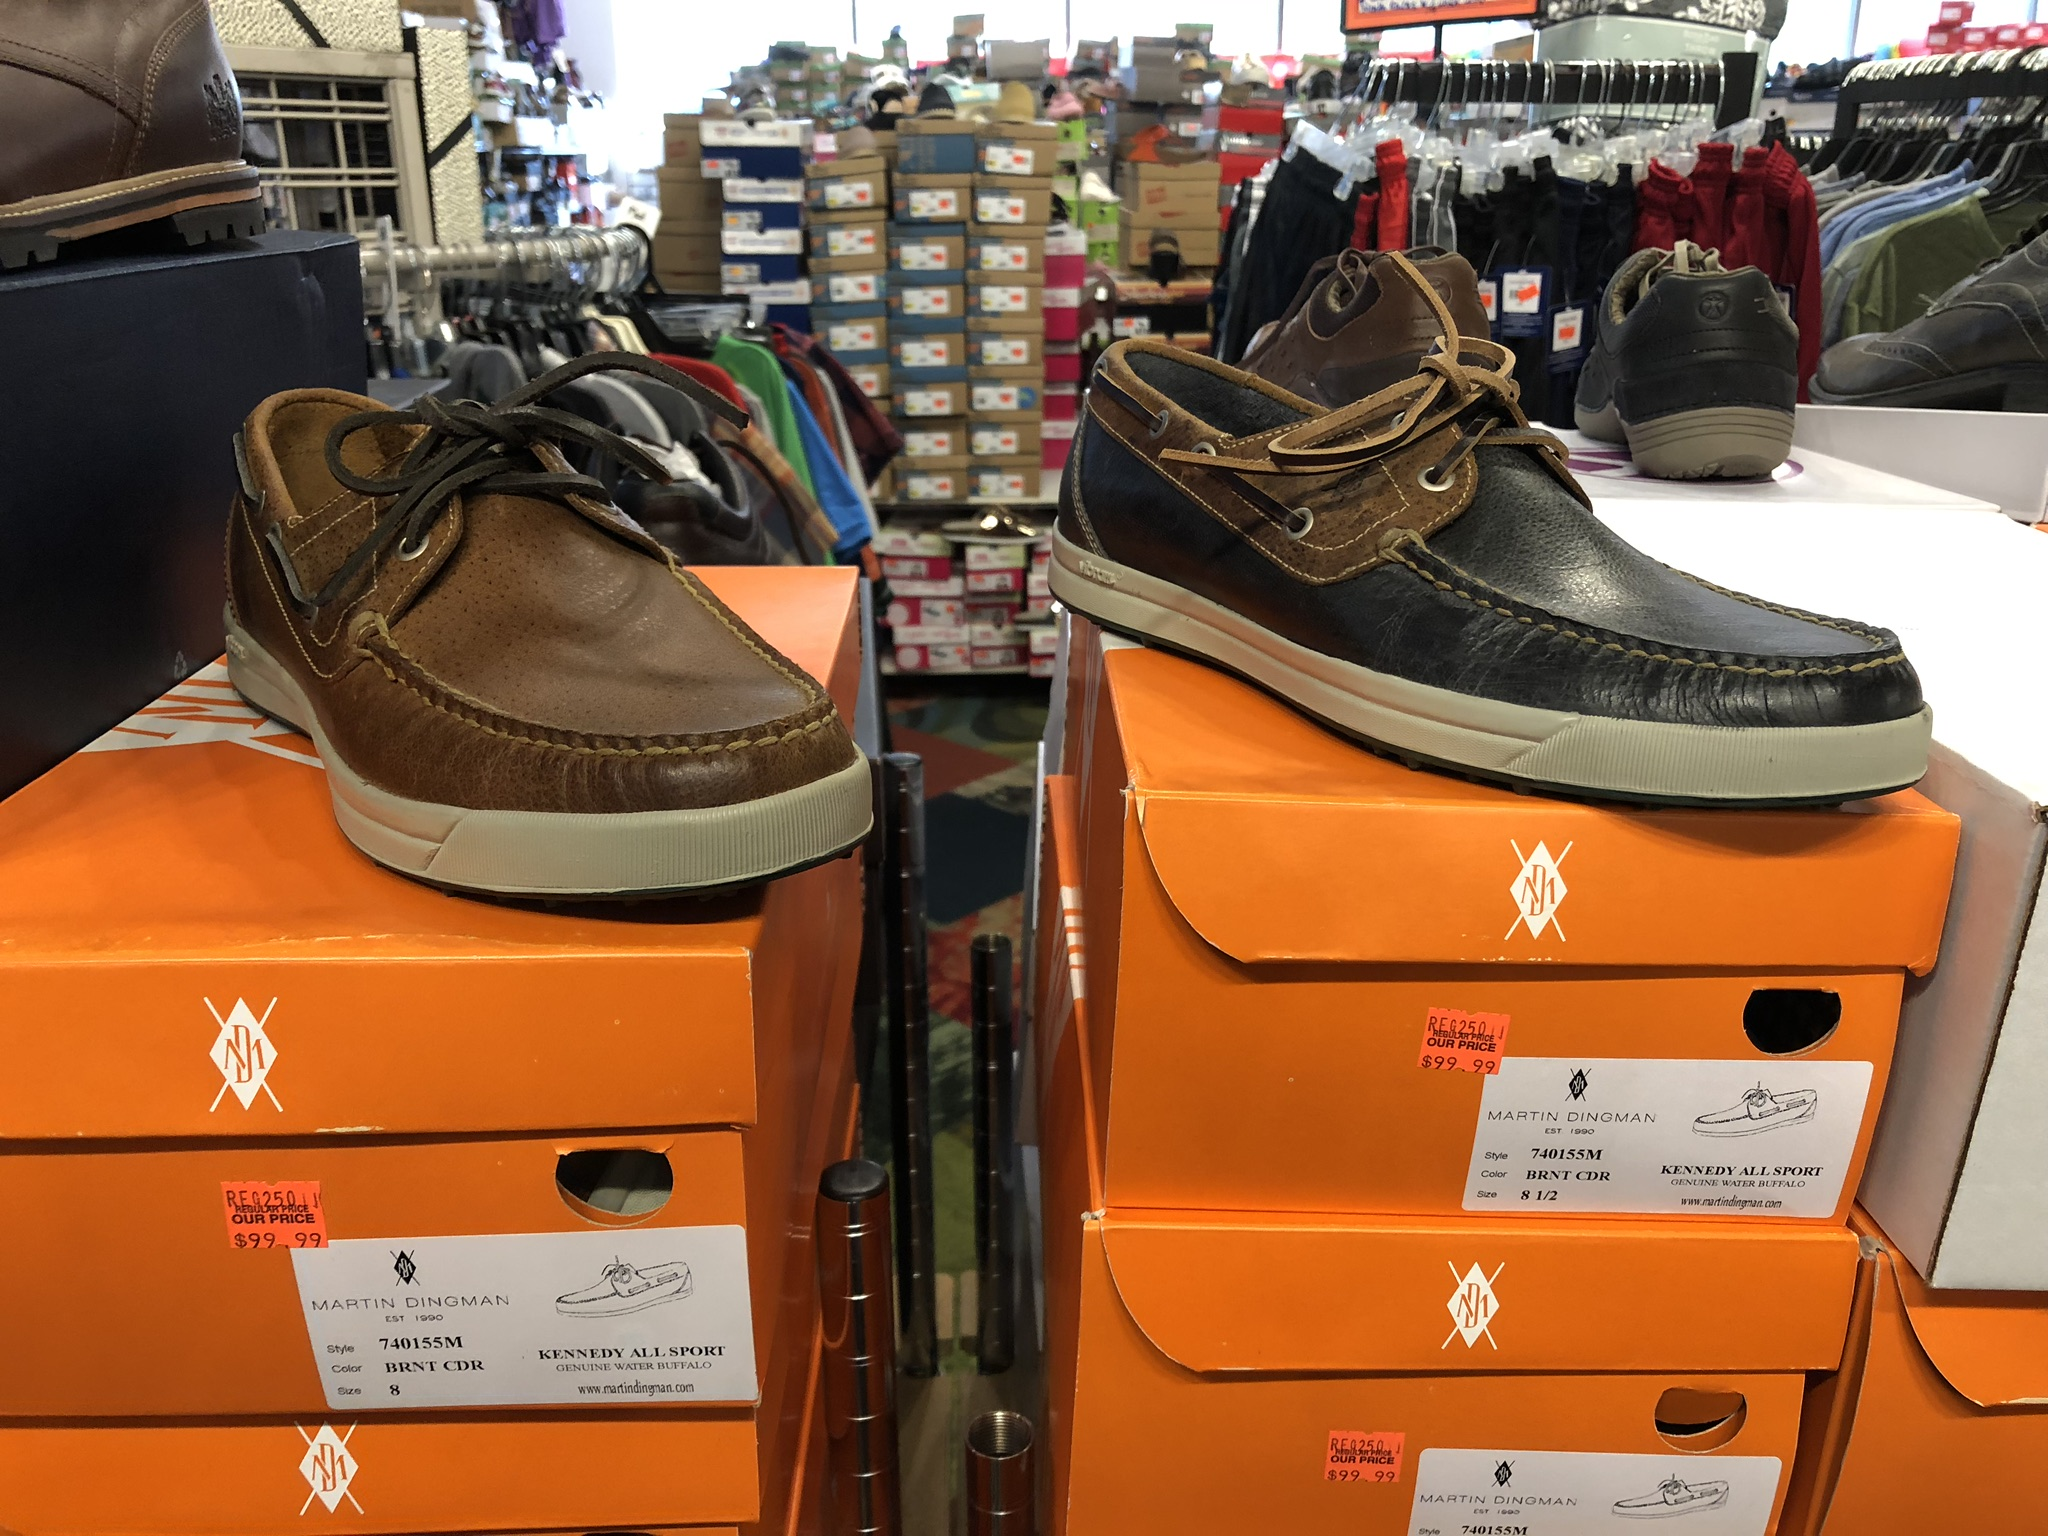 Martin Dingman Boat Shoes - Reg Price $250, Our Price $99.99